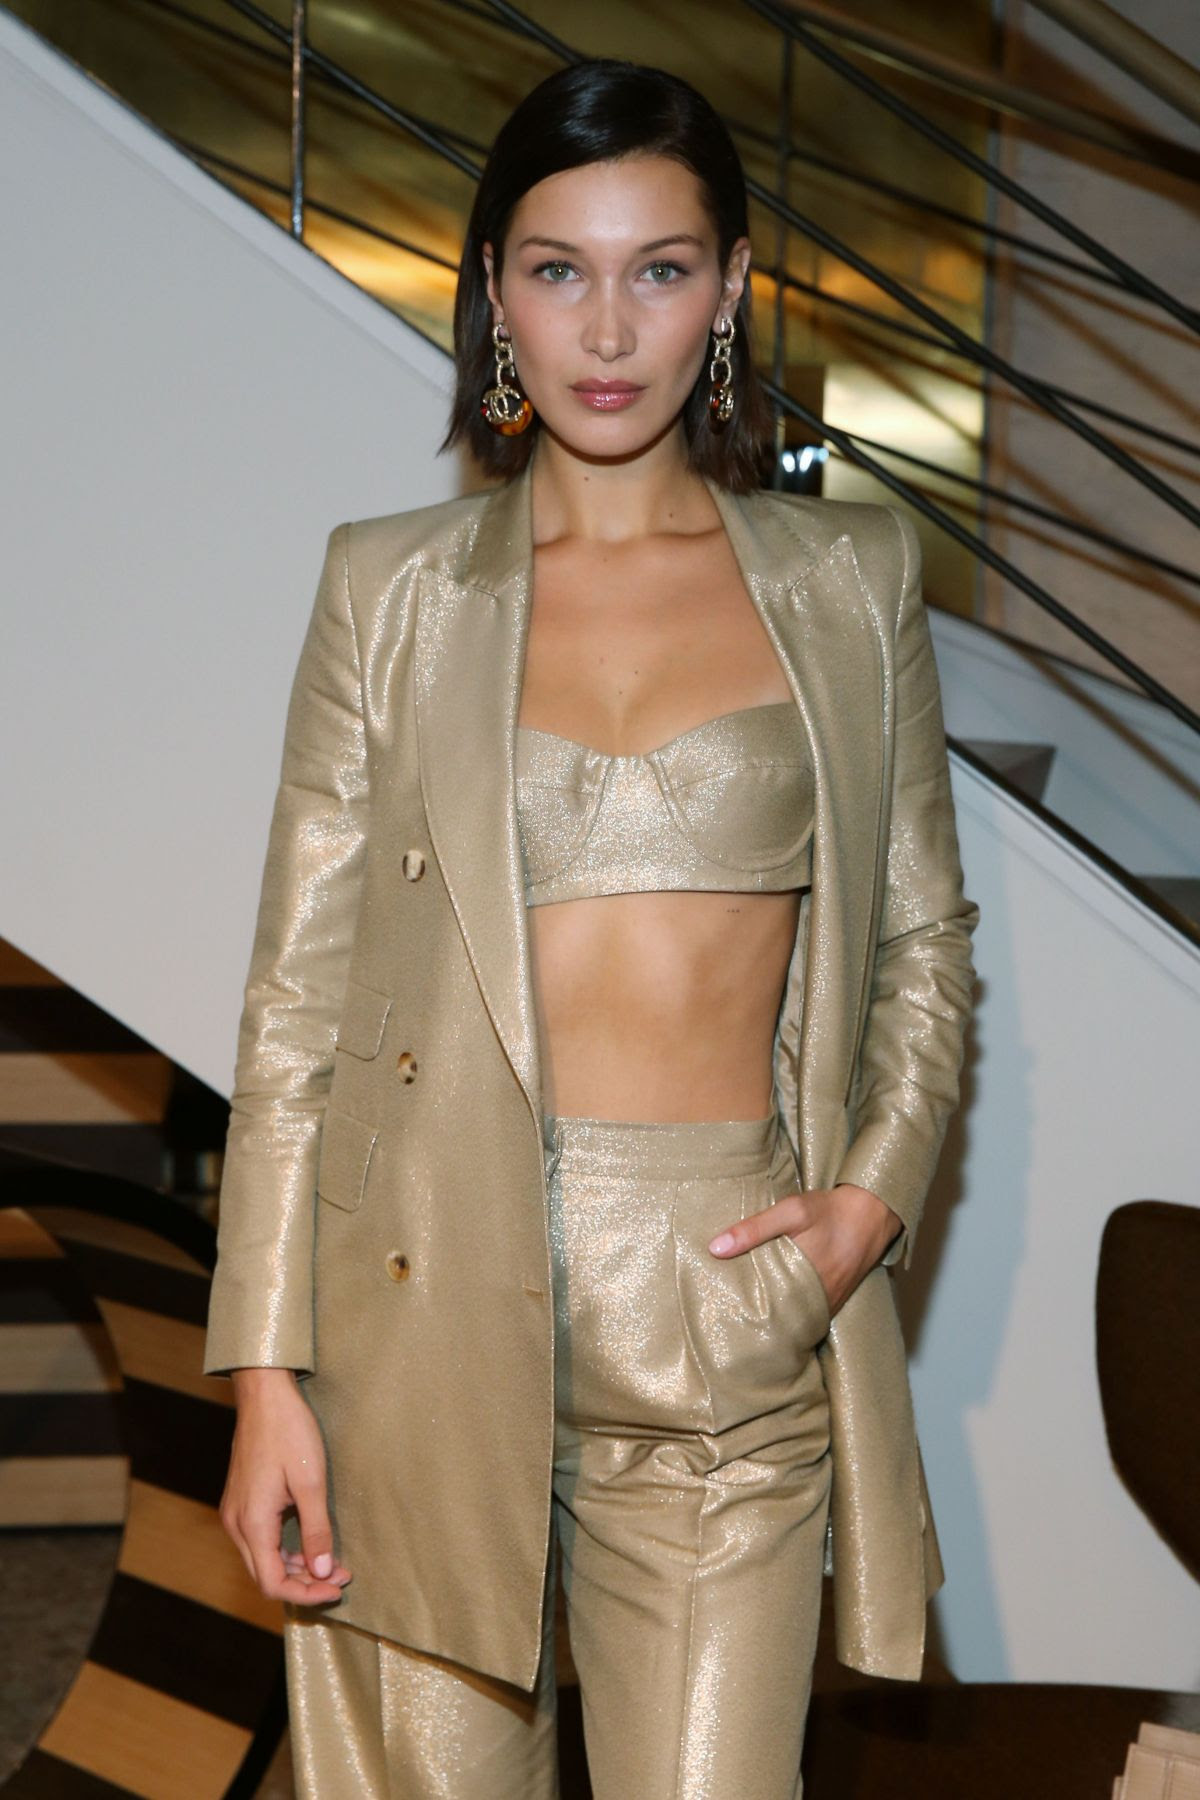 BELLA HADID at Max Mara Boutique Reopening at New York Fashion Week 09/08/2017